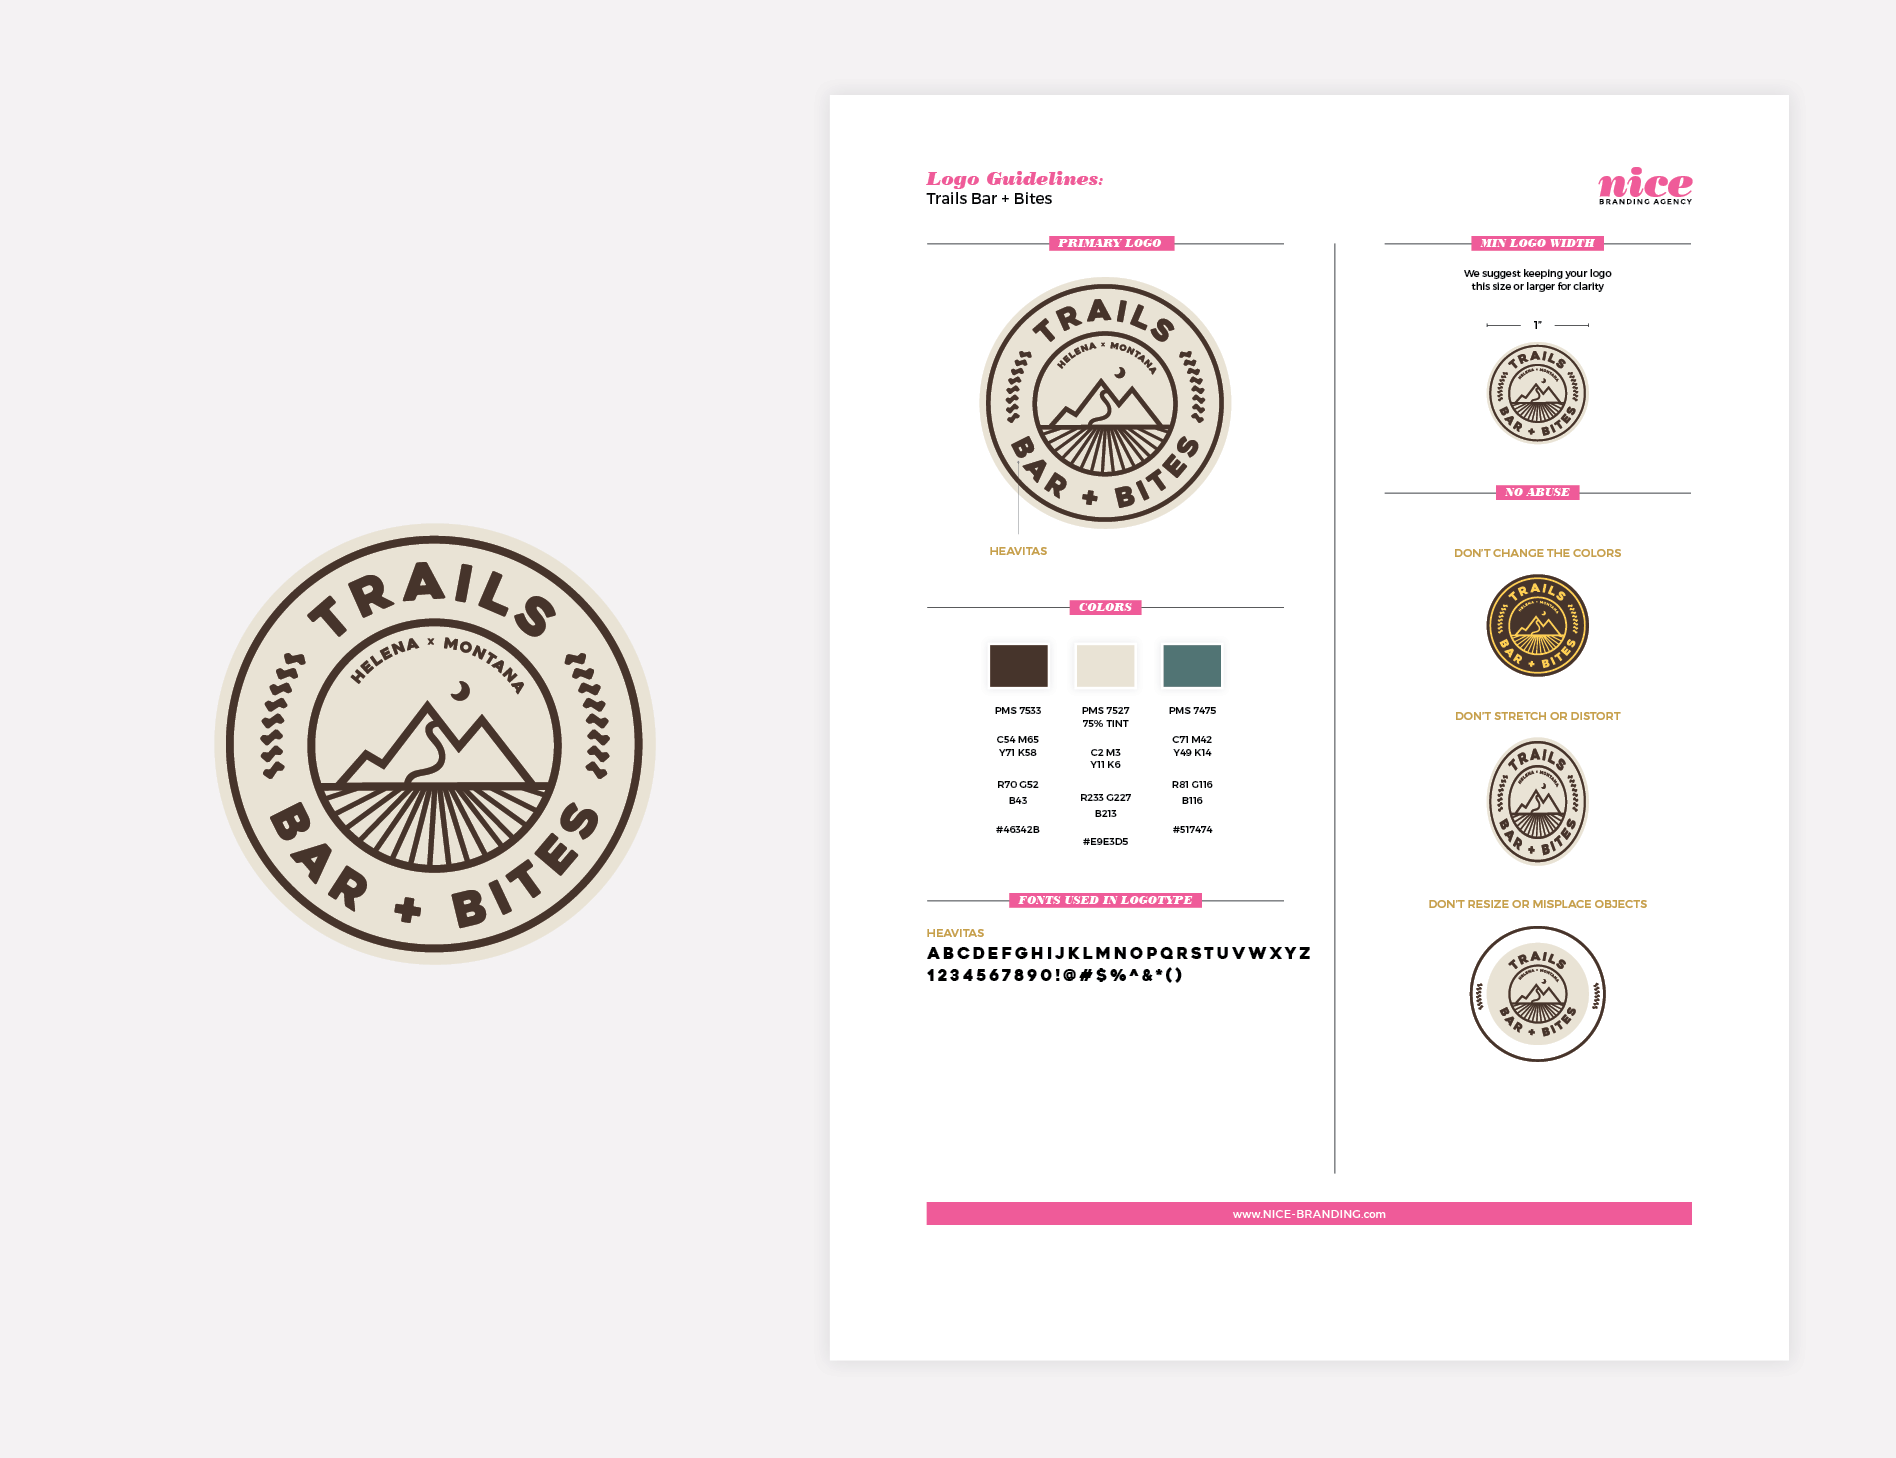 restaurant bar logo guideline sheet